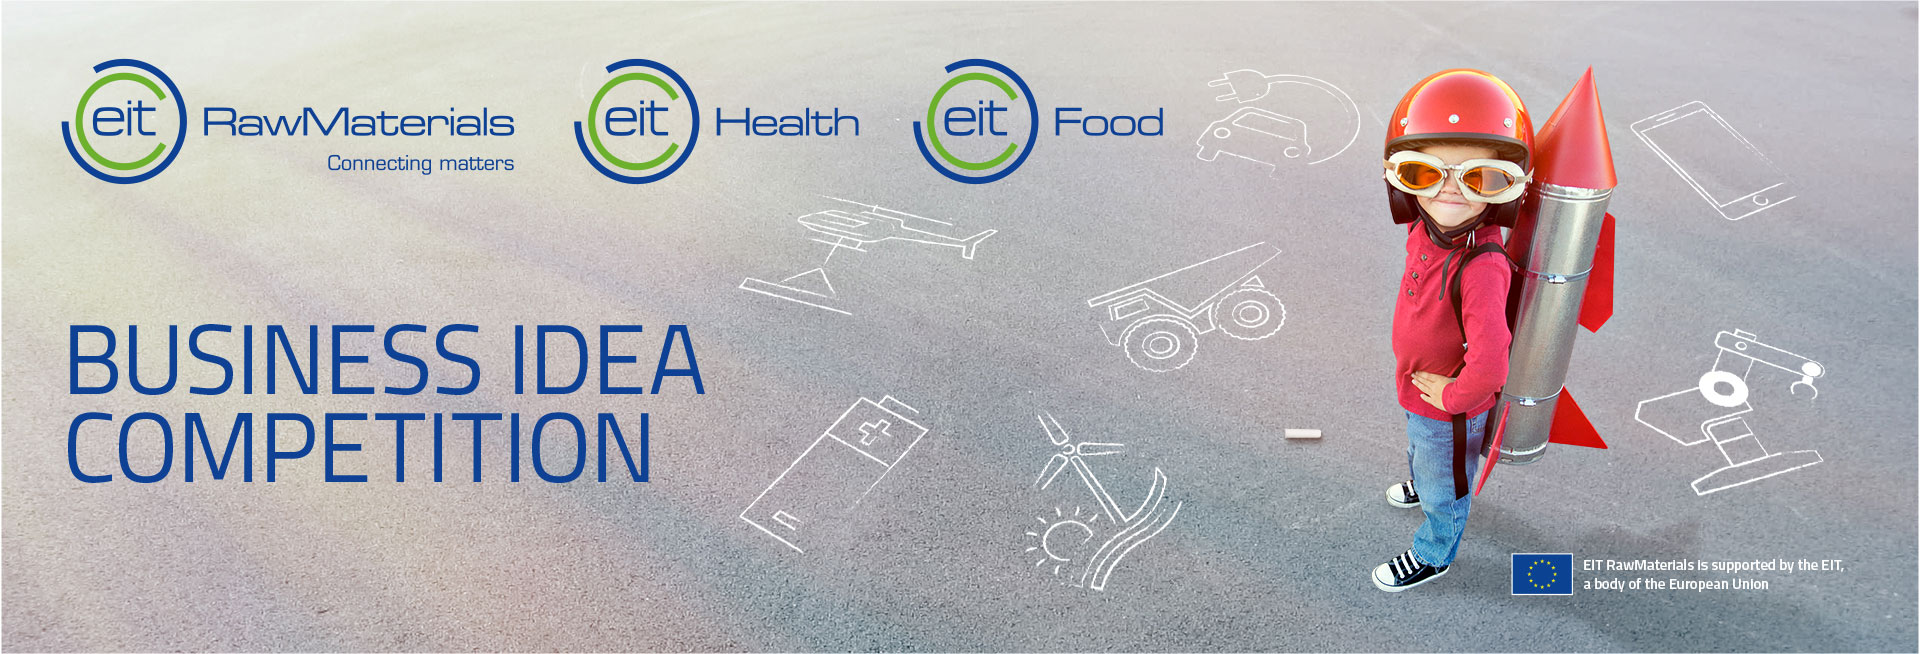 Business Ideas 2019 Europe Business Idea Competition 2018 – EIT RawMaterials